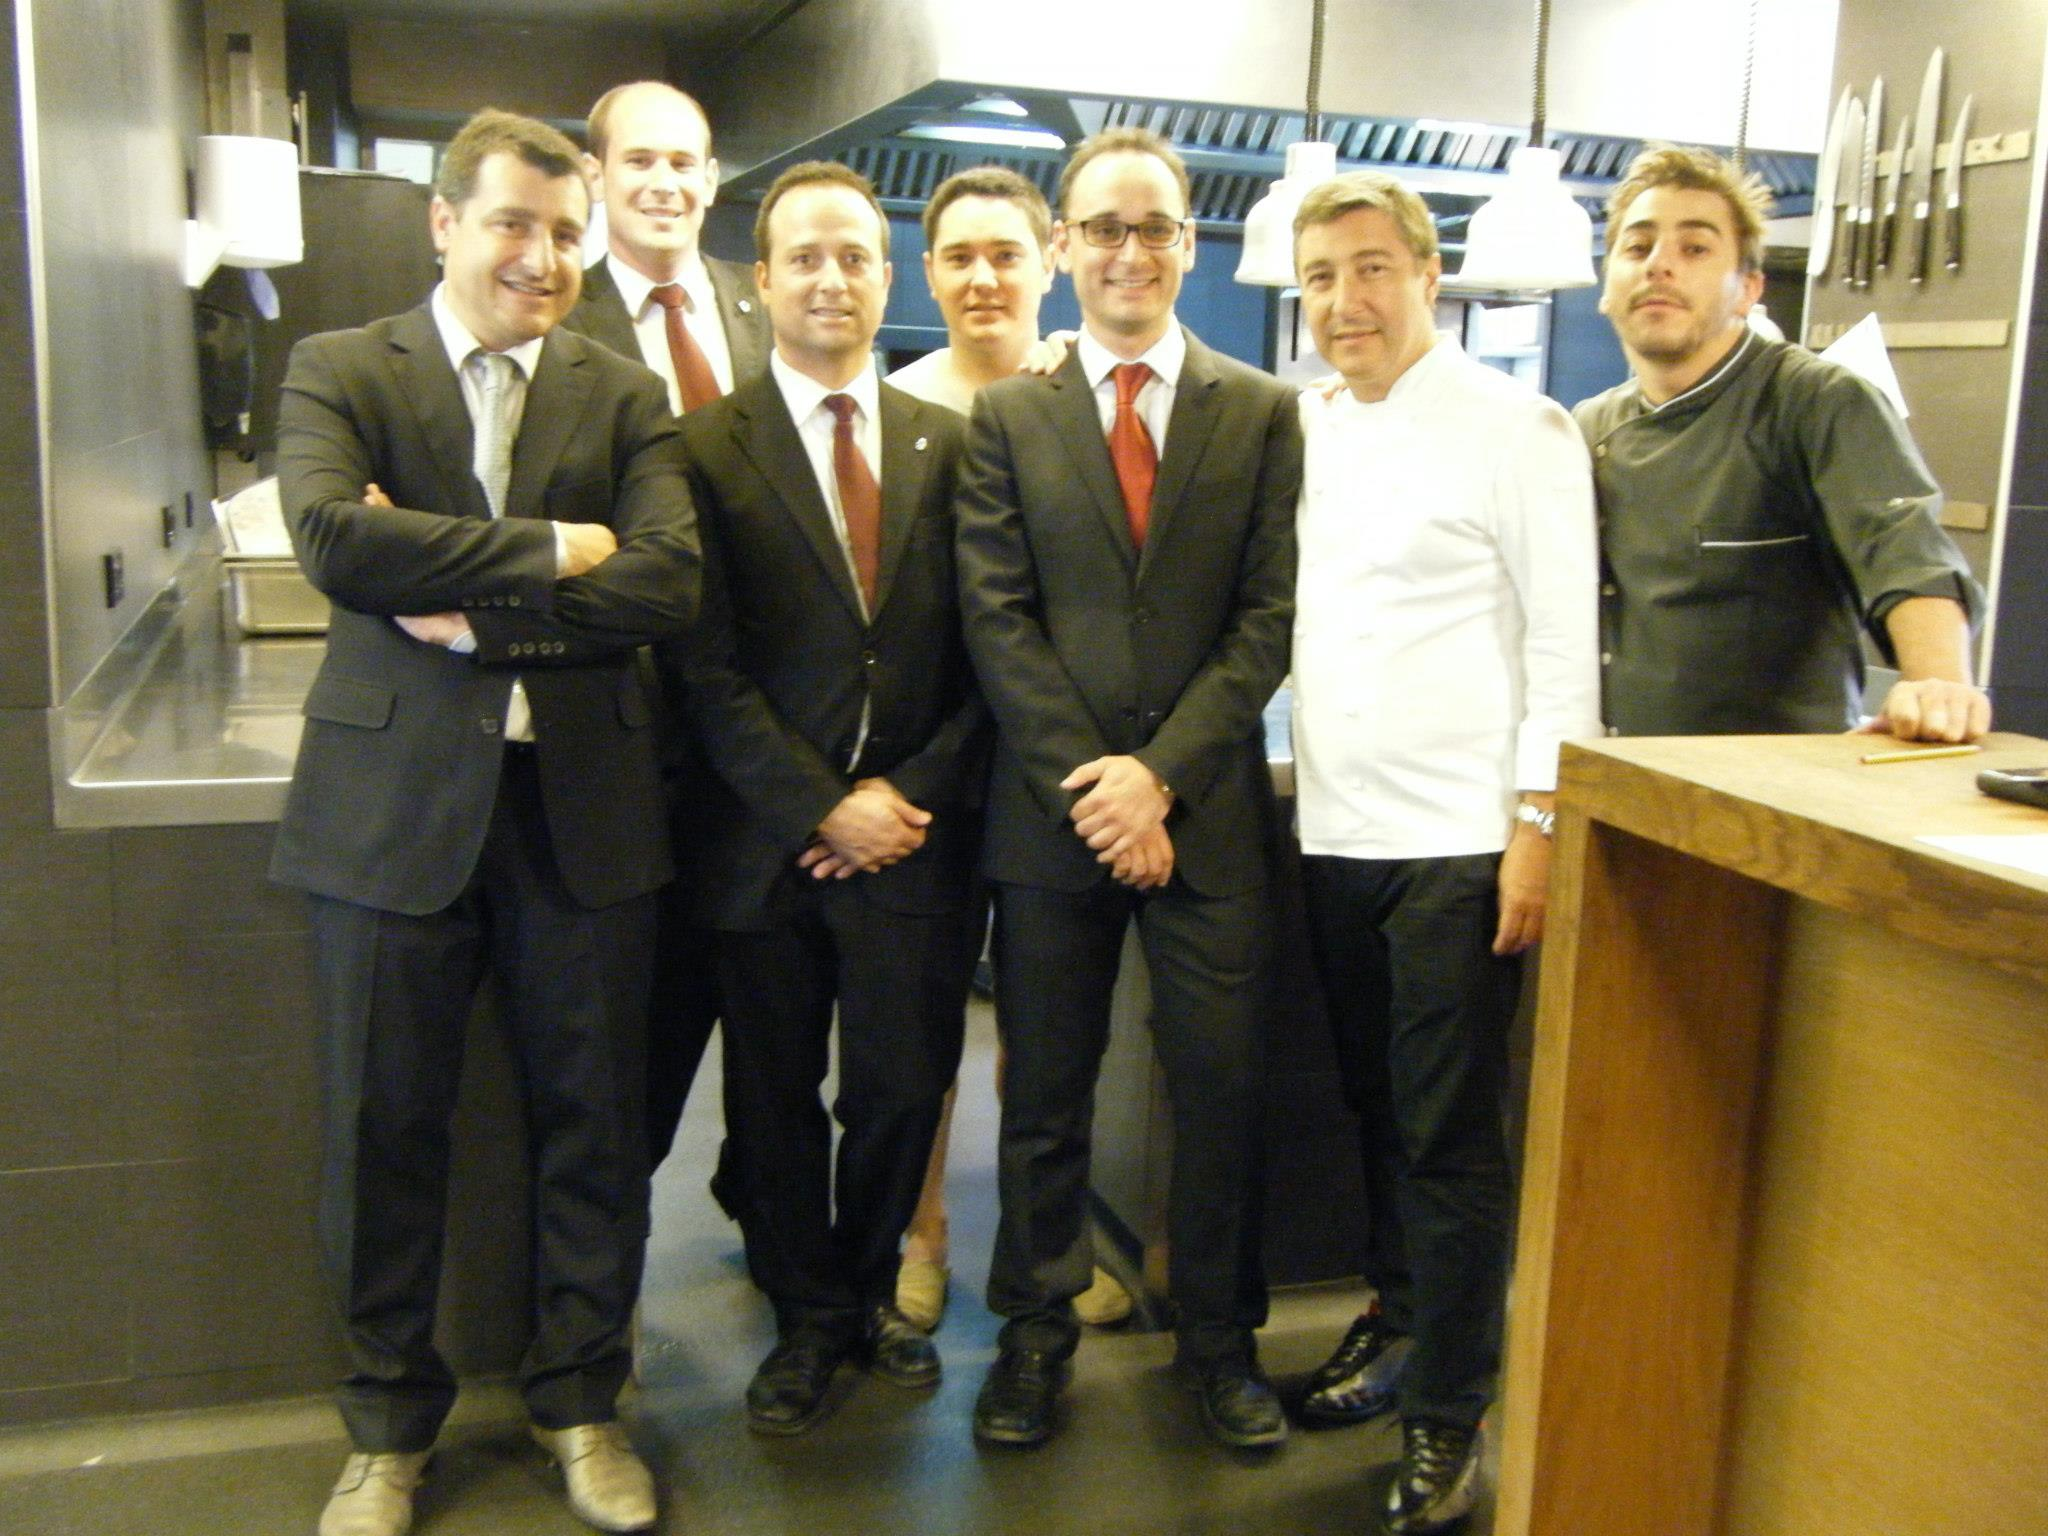 Roca brothers & sommelier team